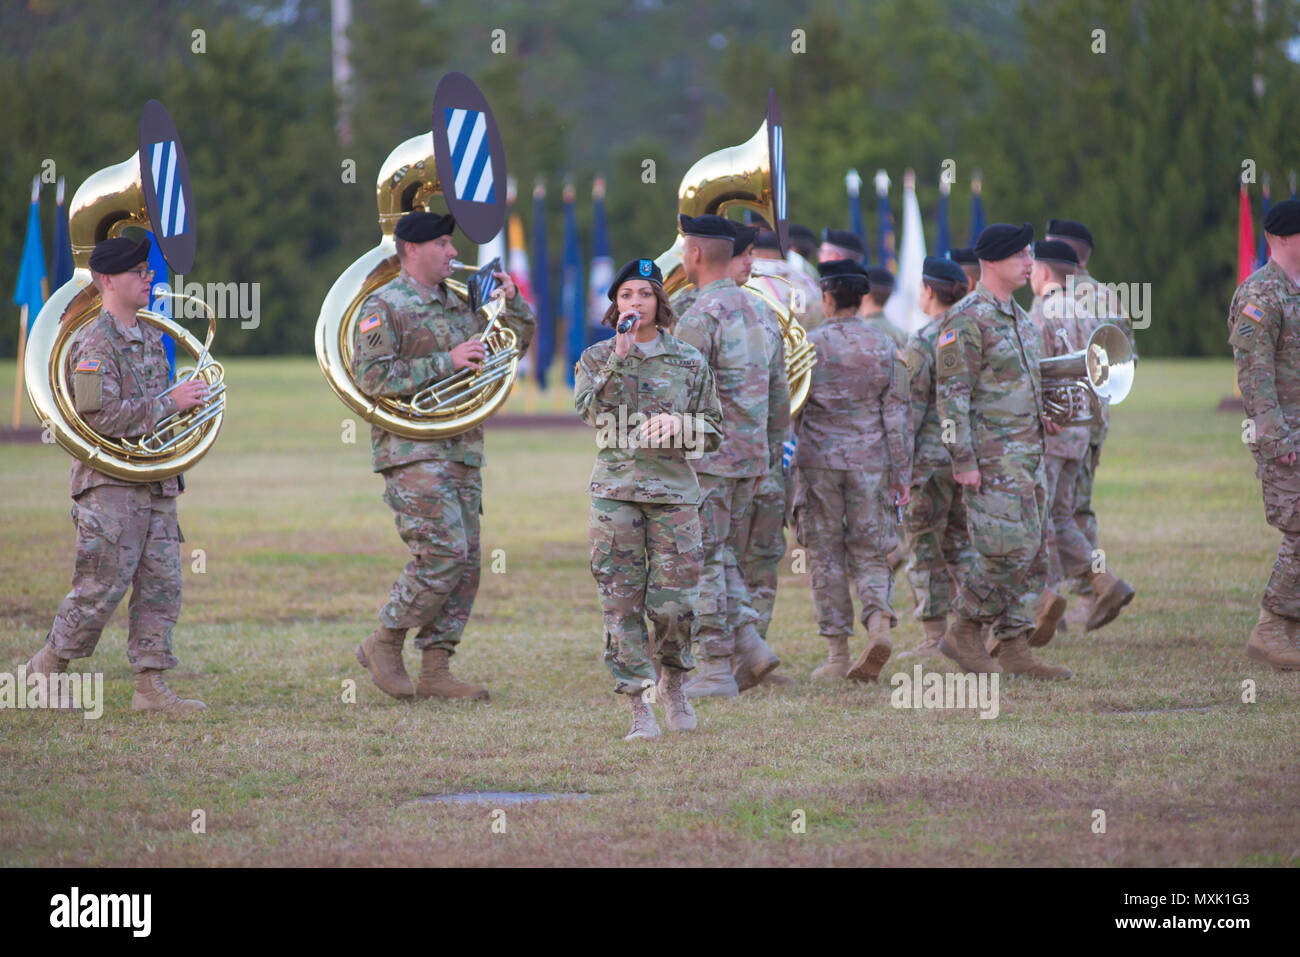 Soldiers perform during the 3rd Infantry Division Twilight Tattoo during Marne Week at Fort Stewart Nov. 15, 2016. Twilight Tattoo is a ceremony honoring veterans and family members. (Photo by LTC Brian J. Fickel) - Stock Image